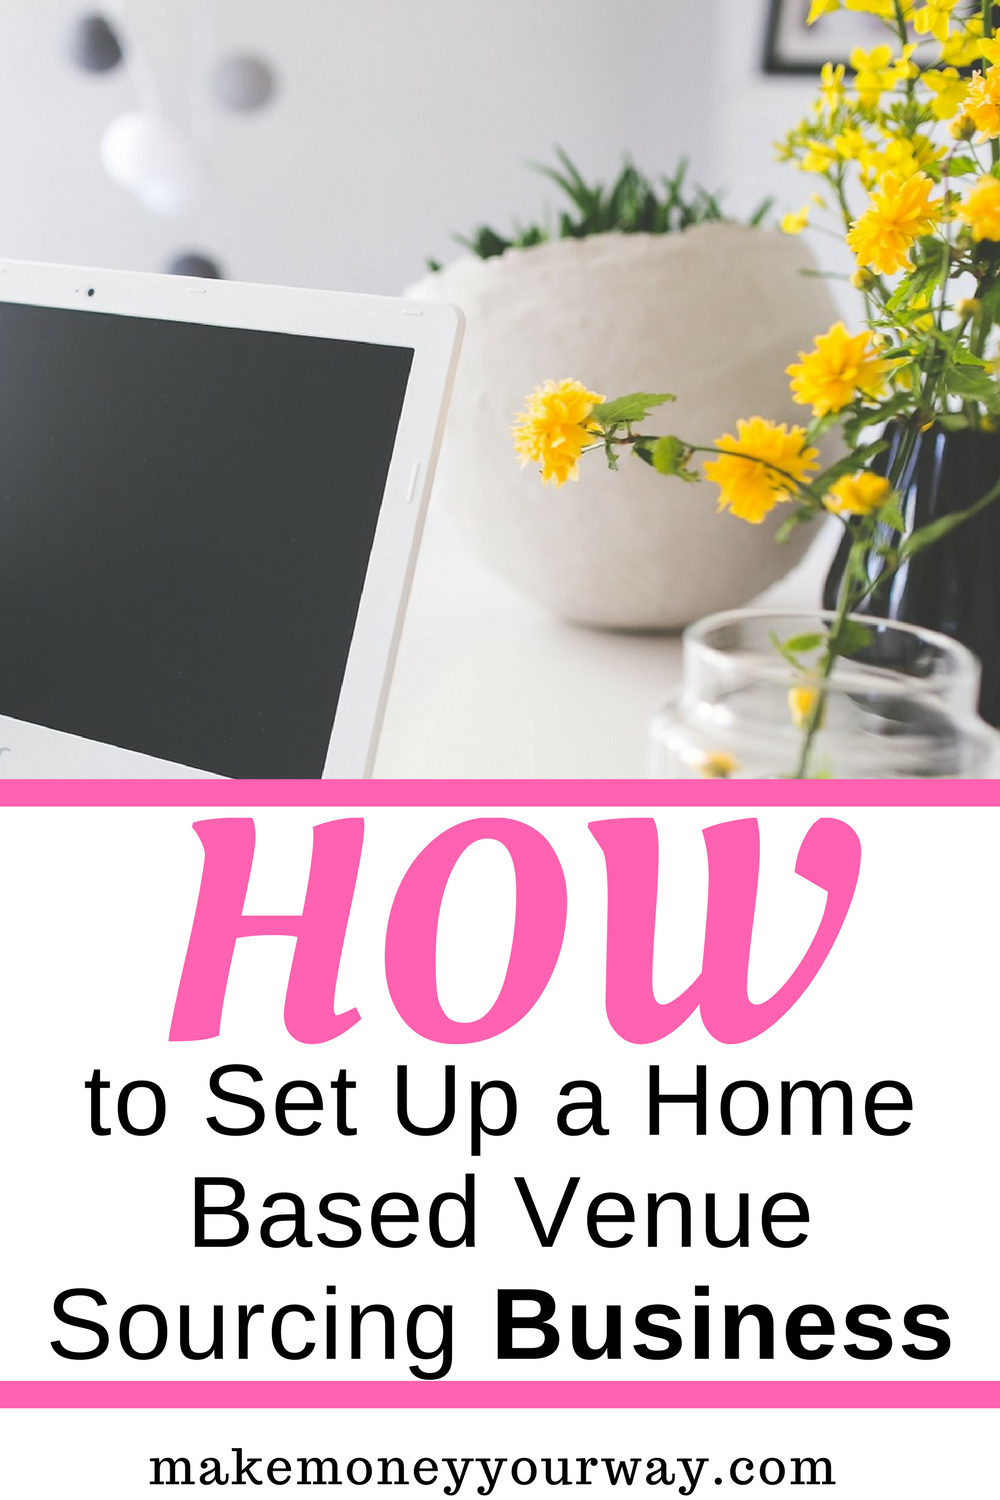 How to Set Up a Home Based Venue Sourcing Business - Make Money Your Way